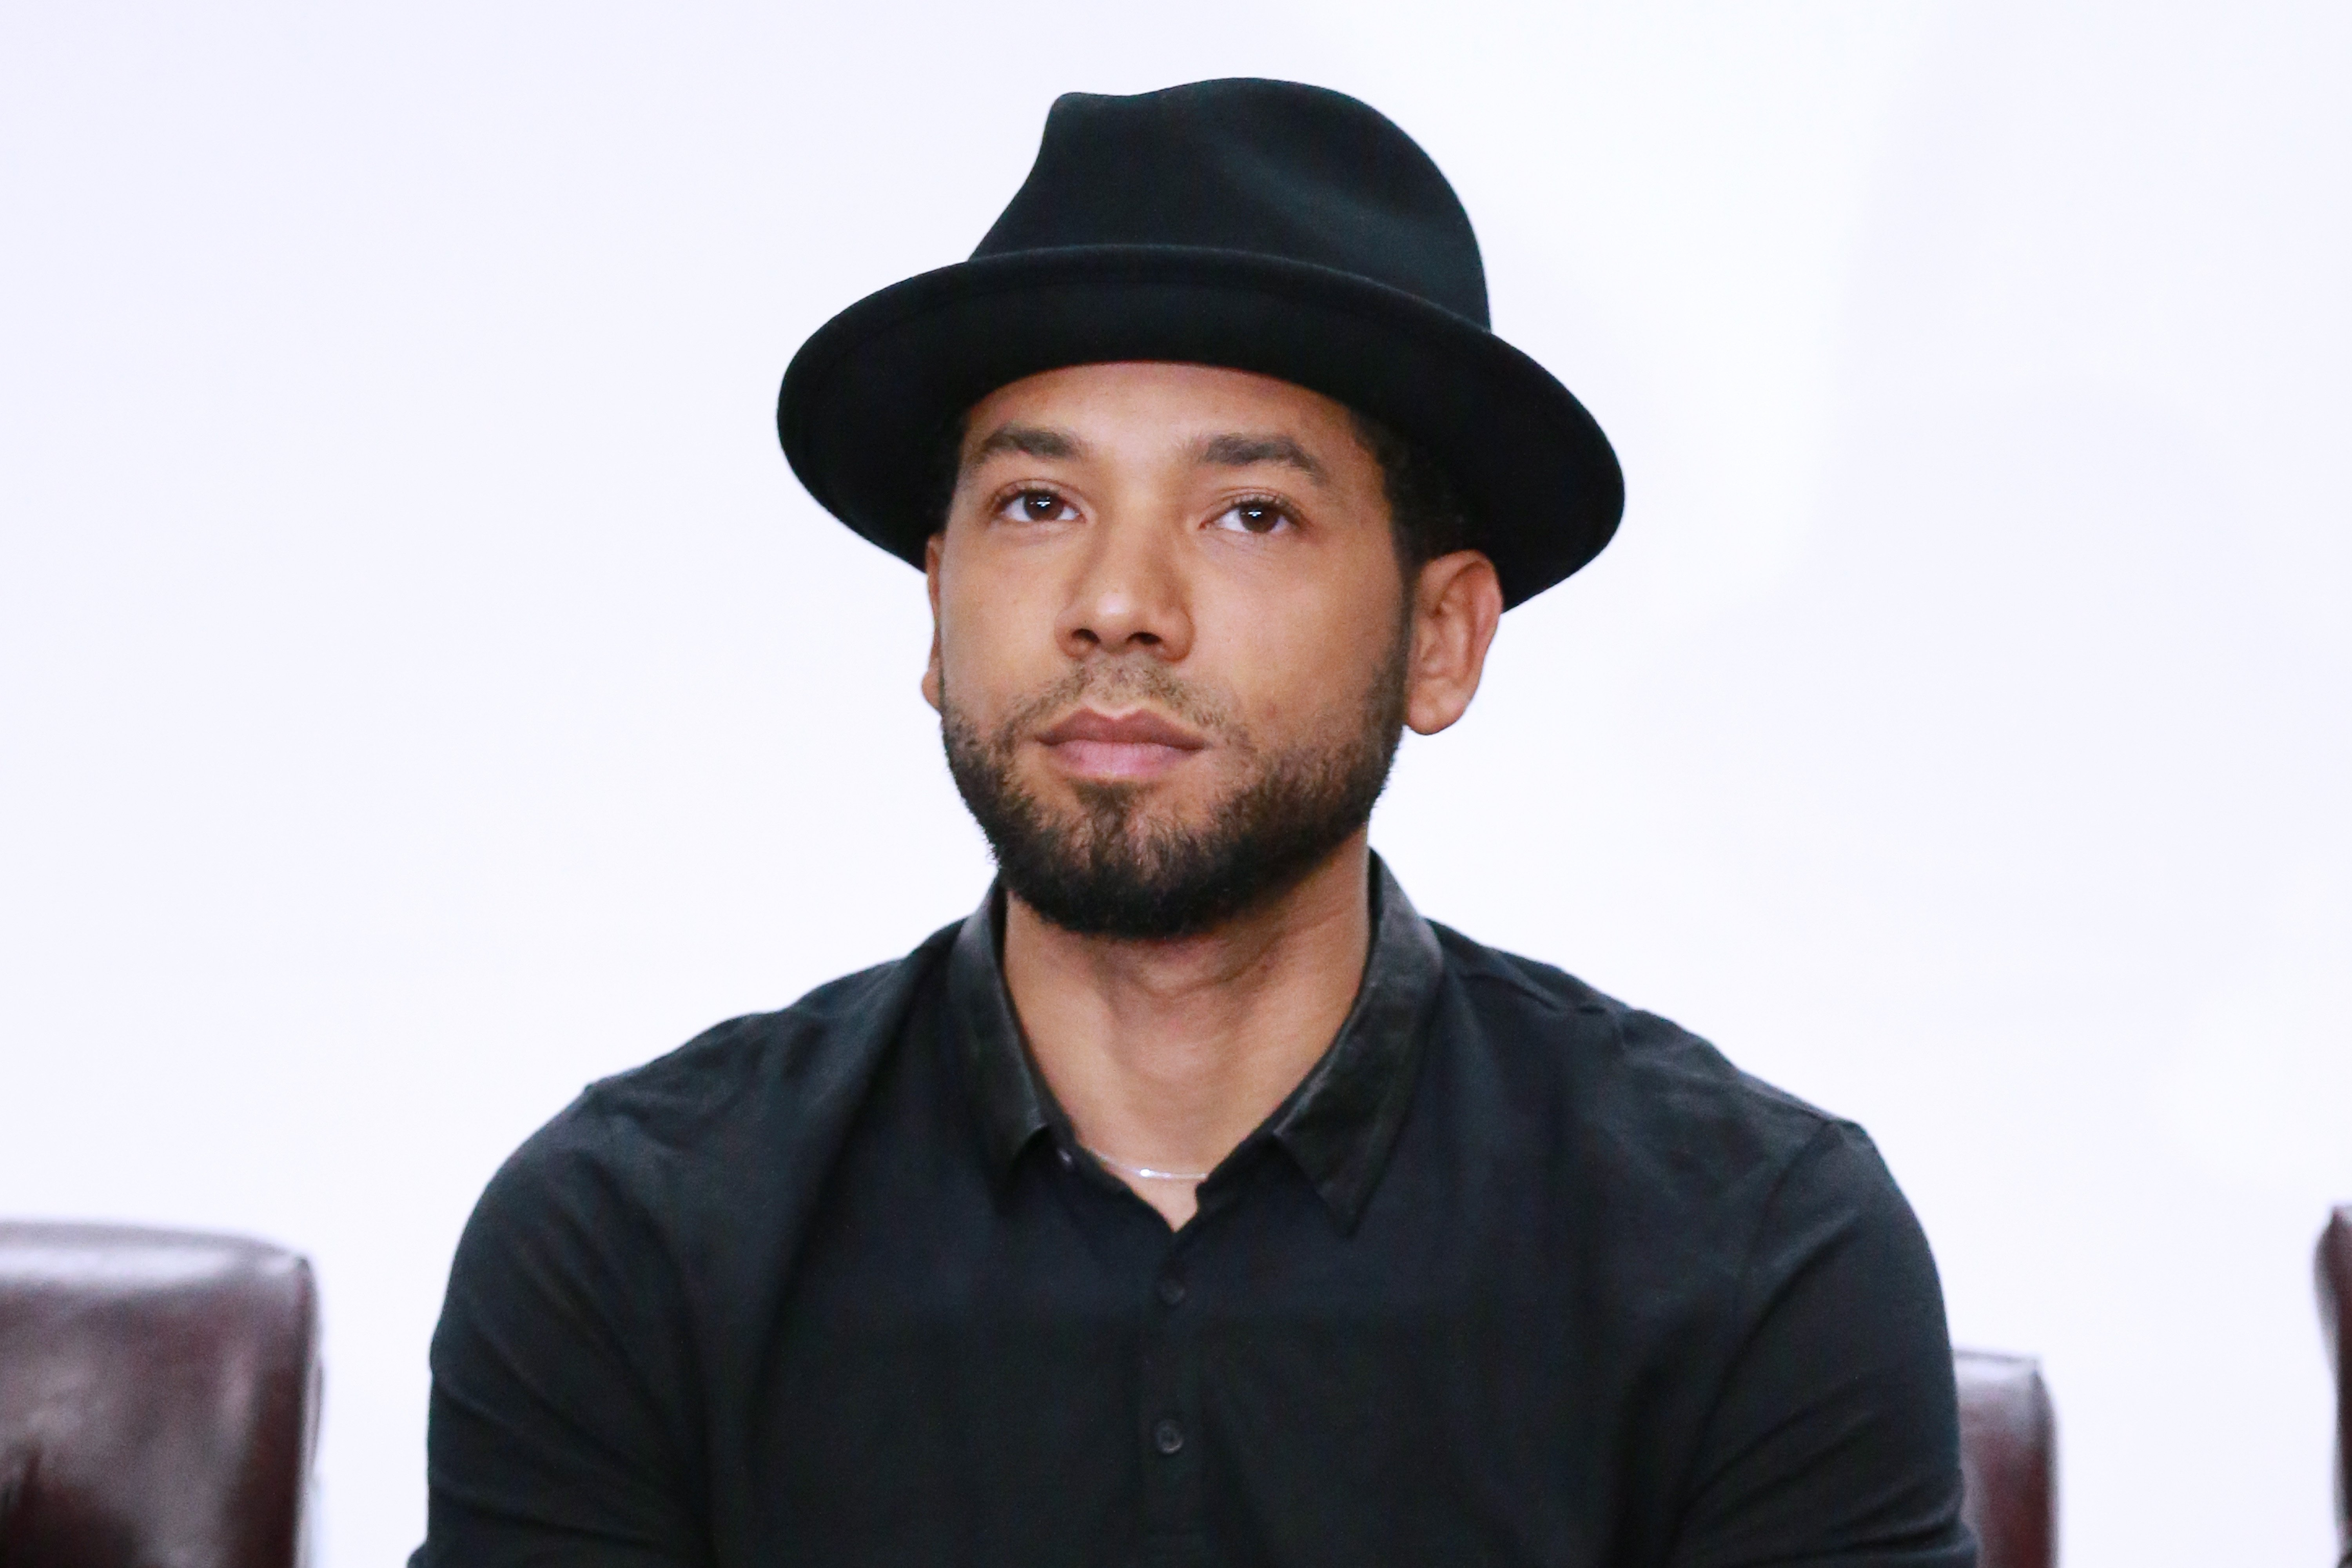 Jussie Smollett at a film screening at Compton High School in October 2017. | Photo: Getty Images